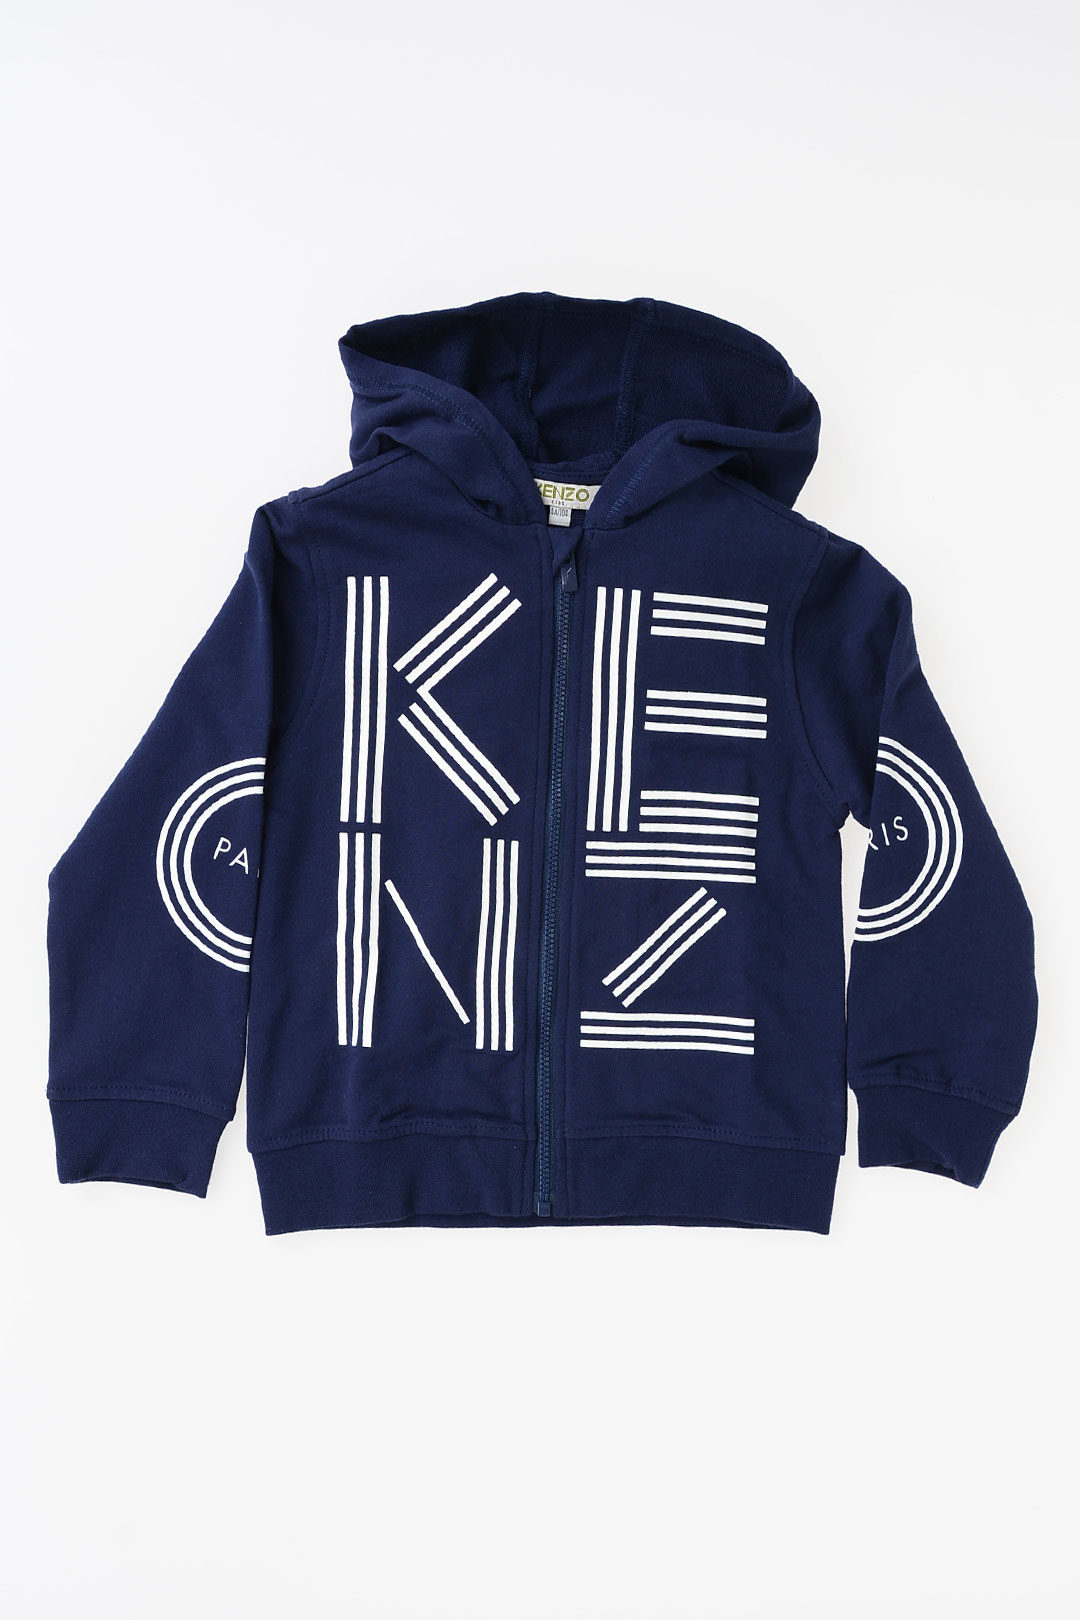 63db368e Kenzo Kids Zipped Sweatshirt boys - Glamood Outlet